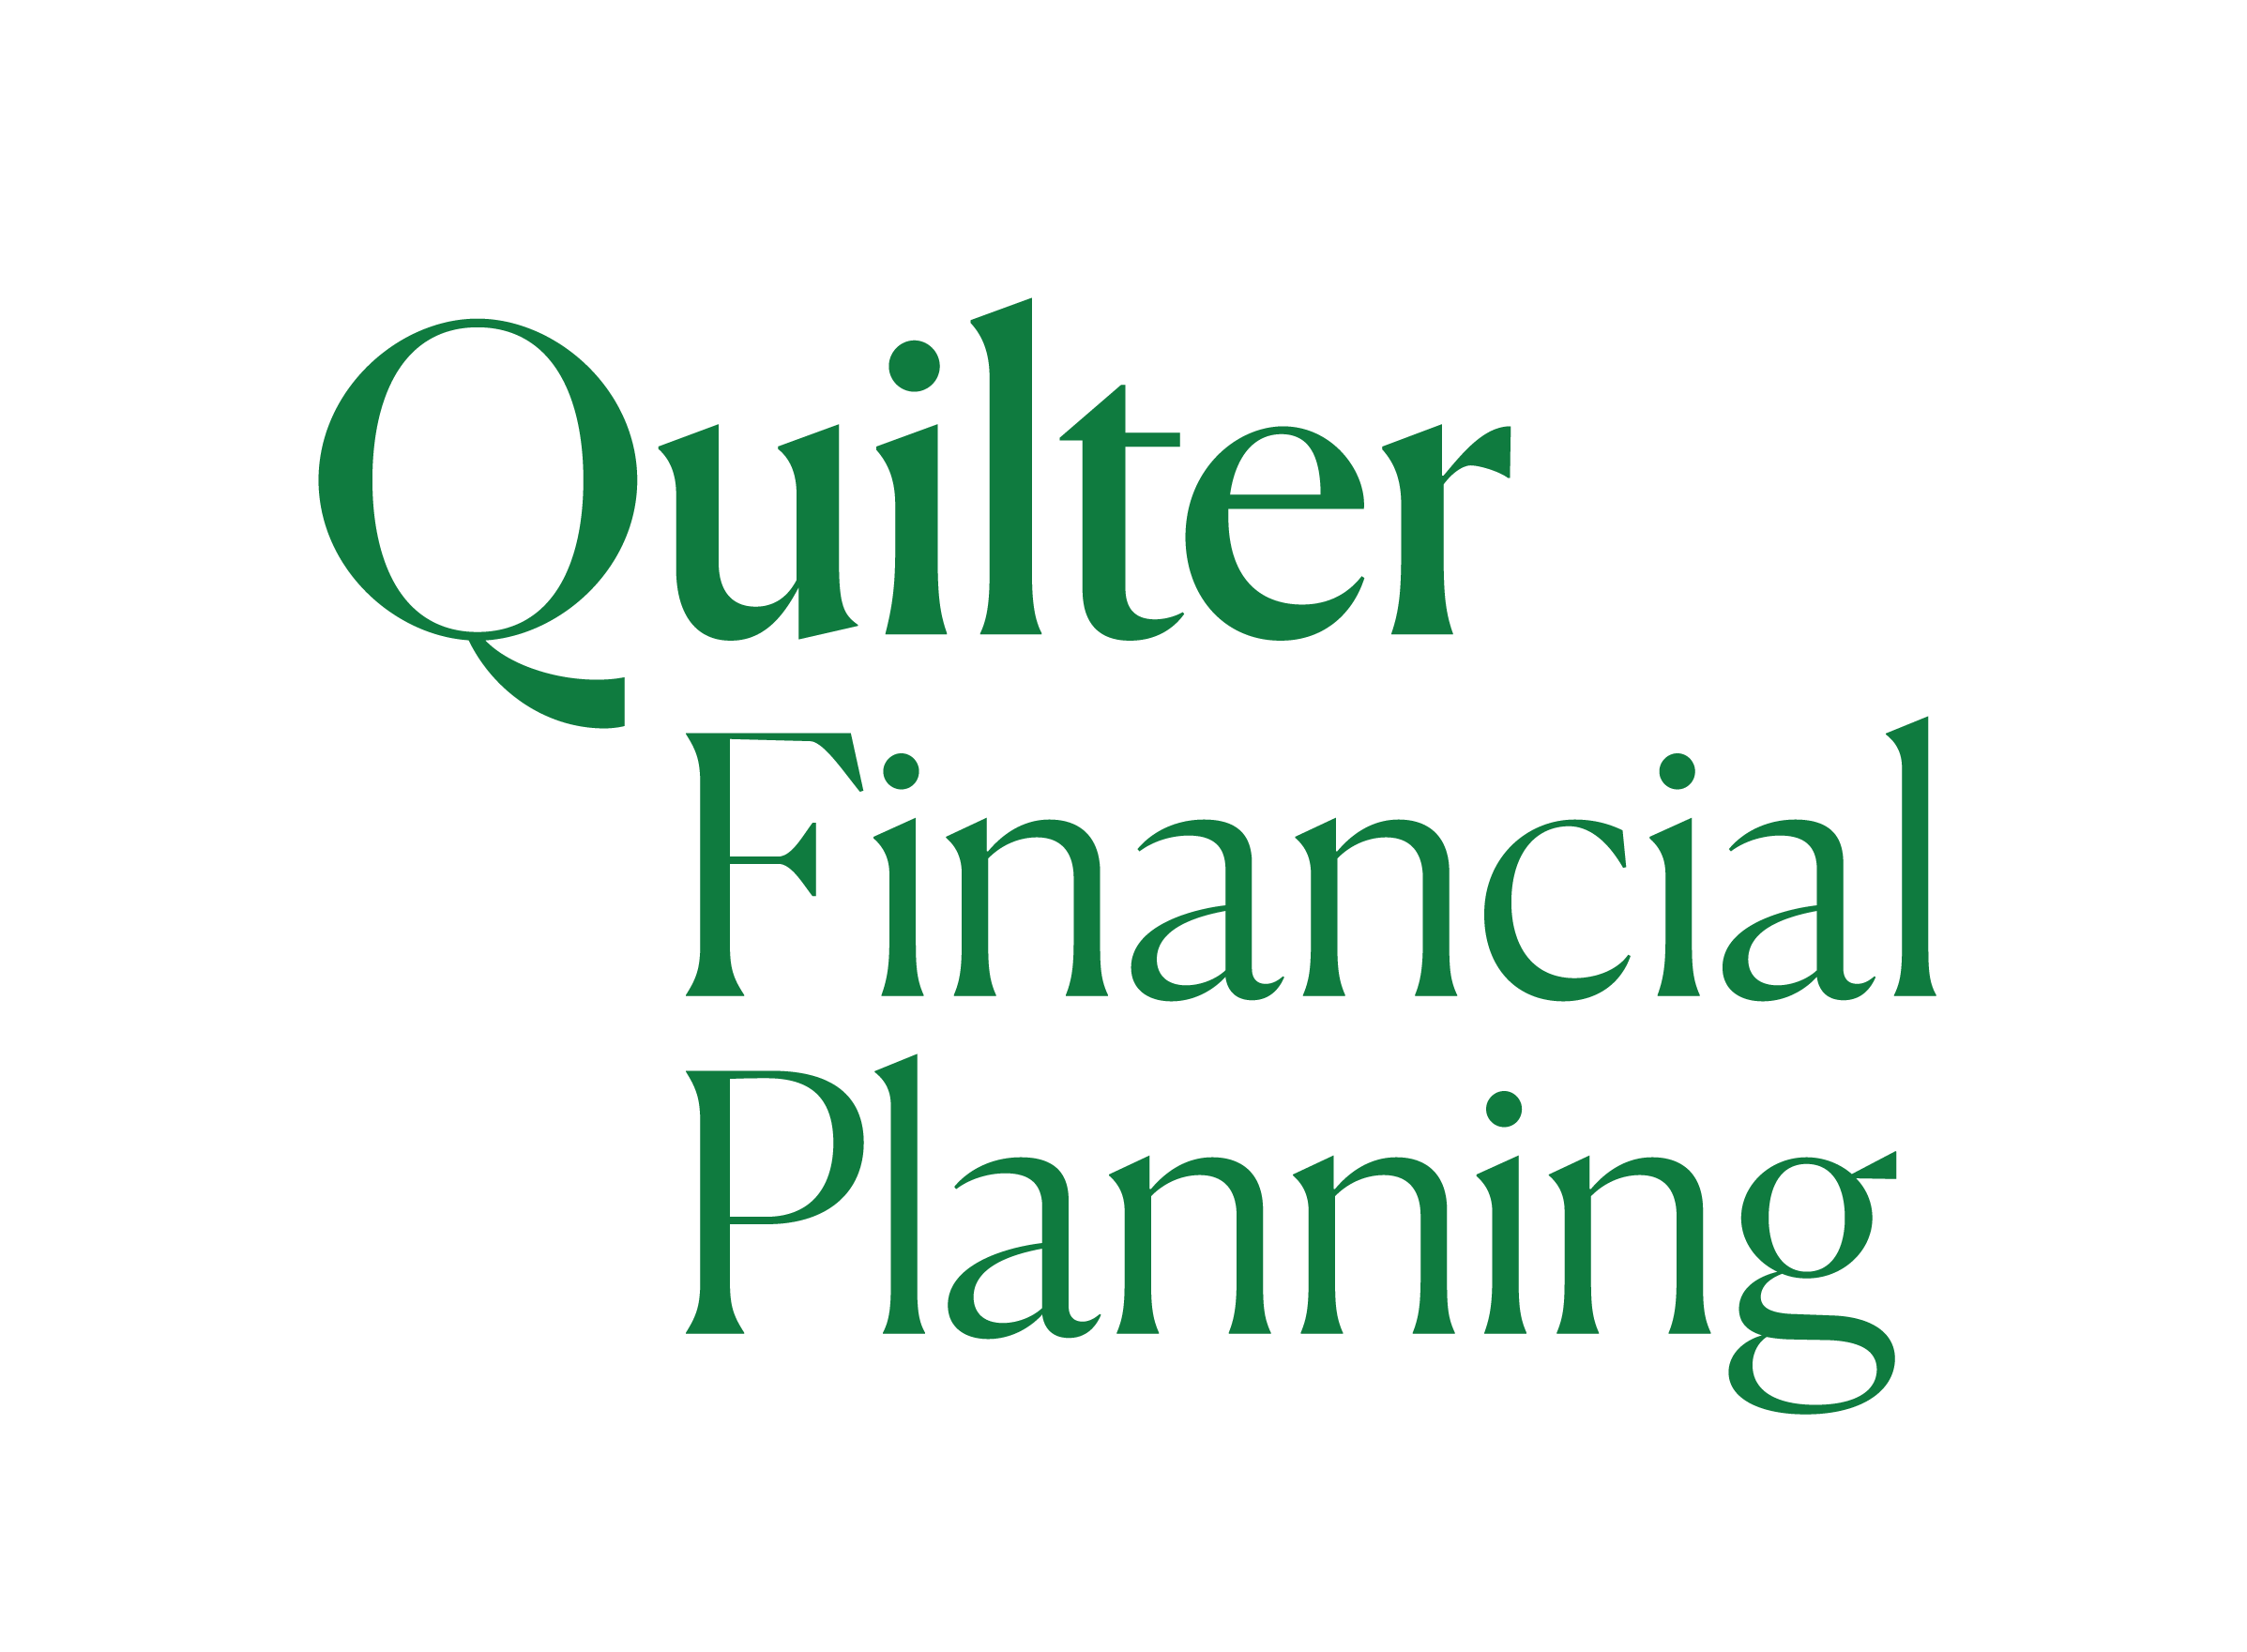 quilter-financial-planning-logo-green-rgb.png